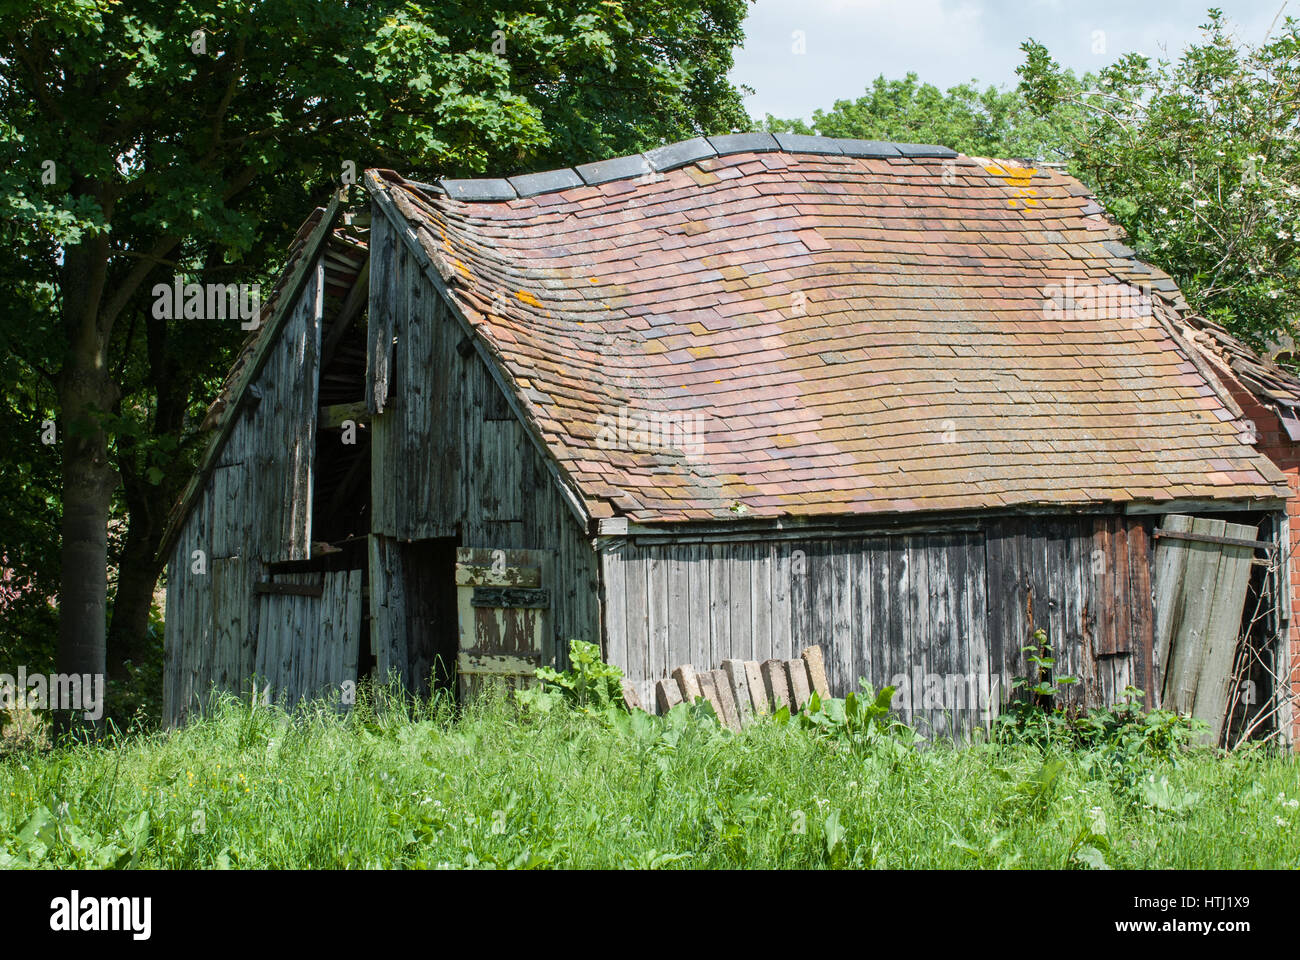 Old rustic barn in a state of decay. England, UK. - Stock Image